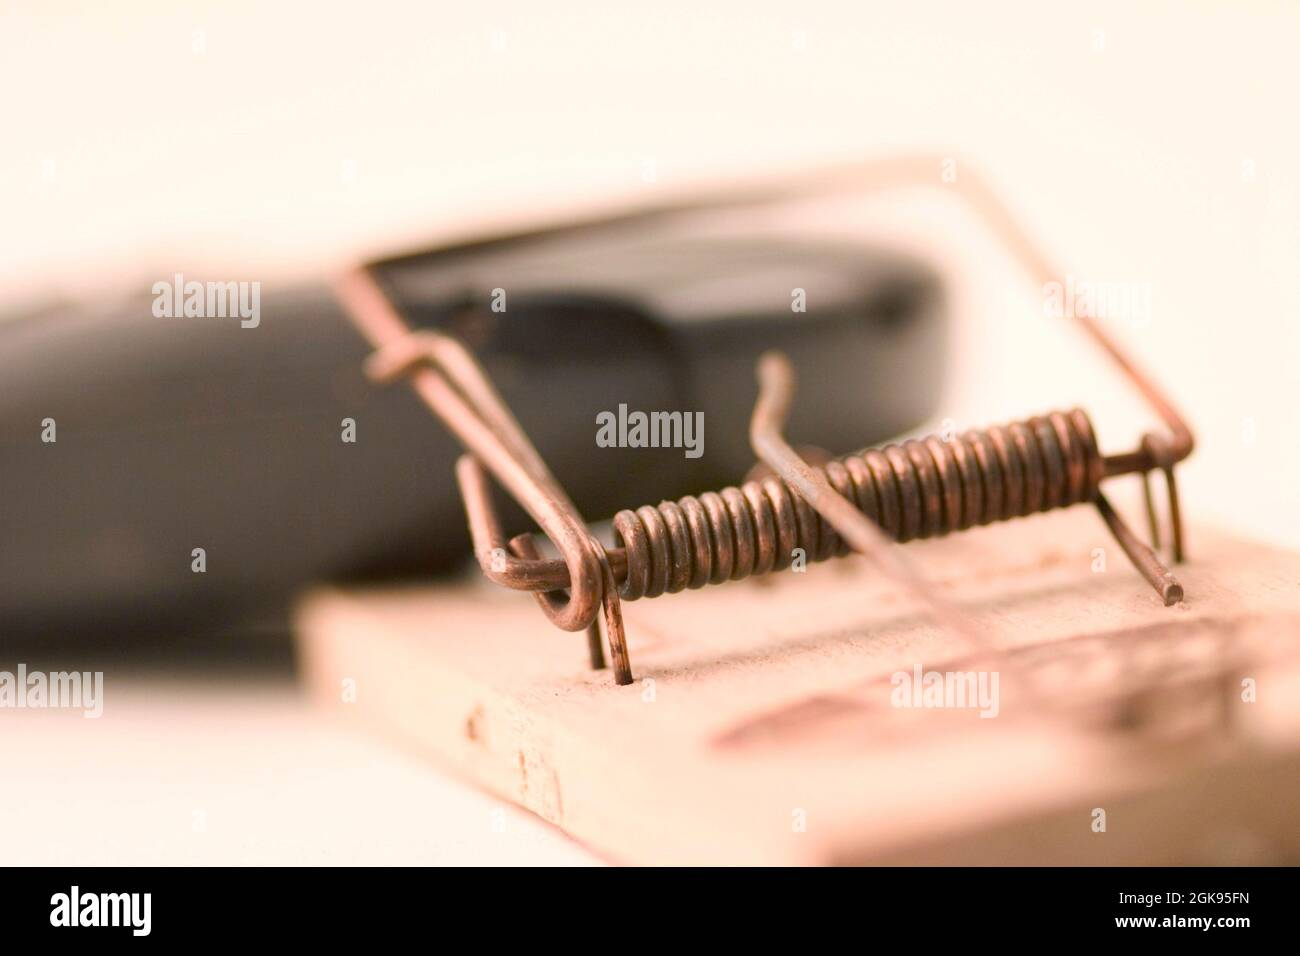 mousetrap and mobile, telephone service Stock Photo